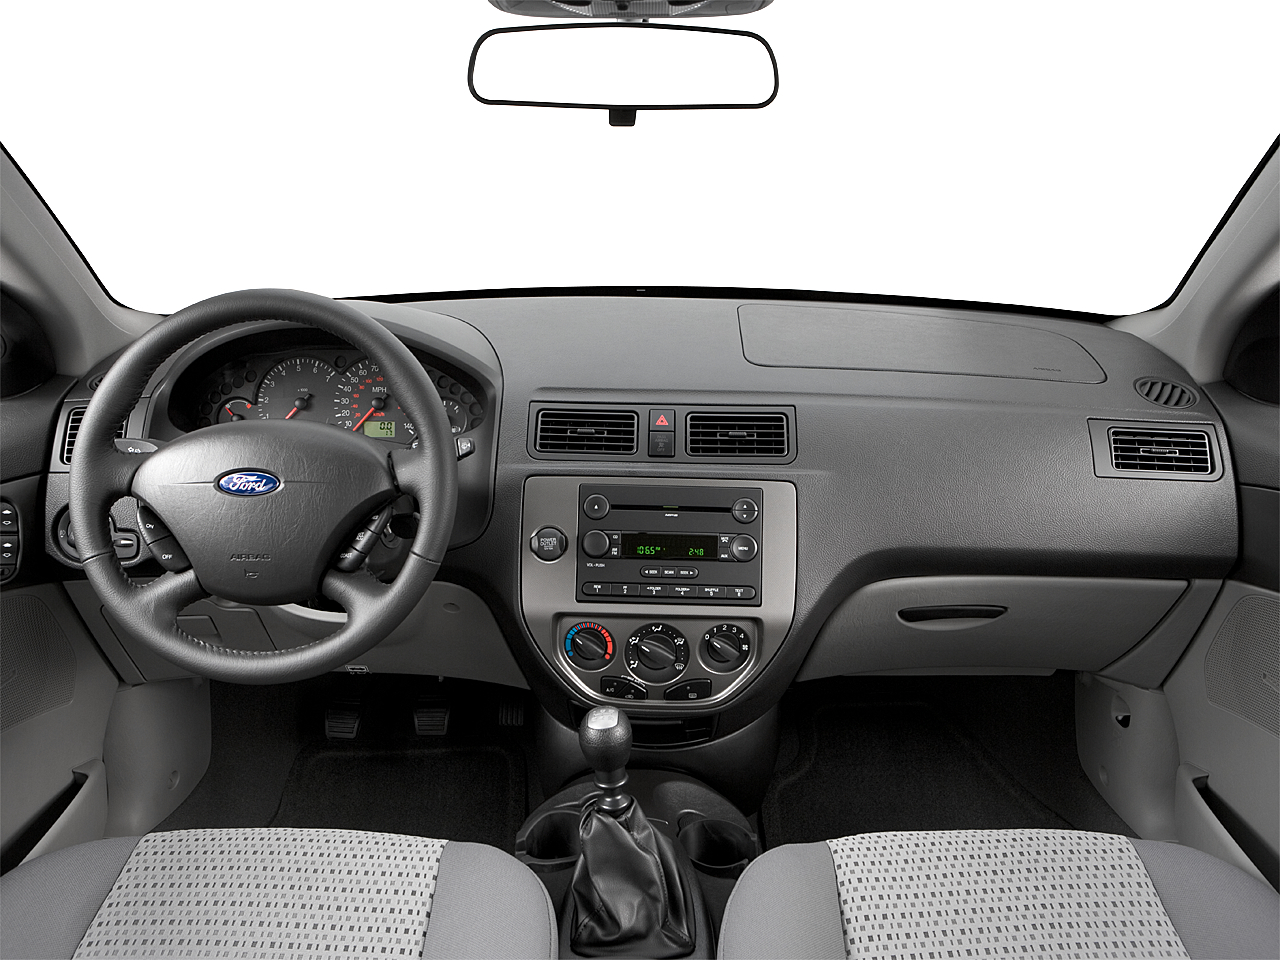 2007 ford focus ses centered wide dash shot